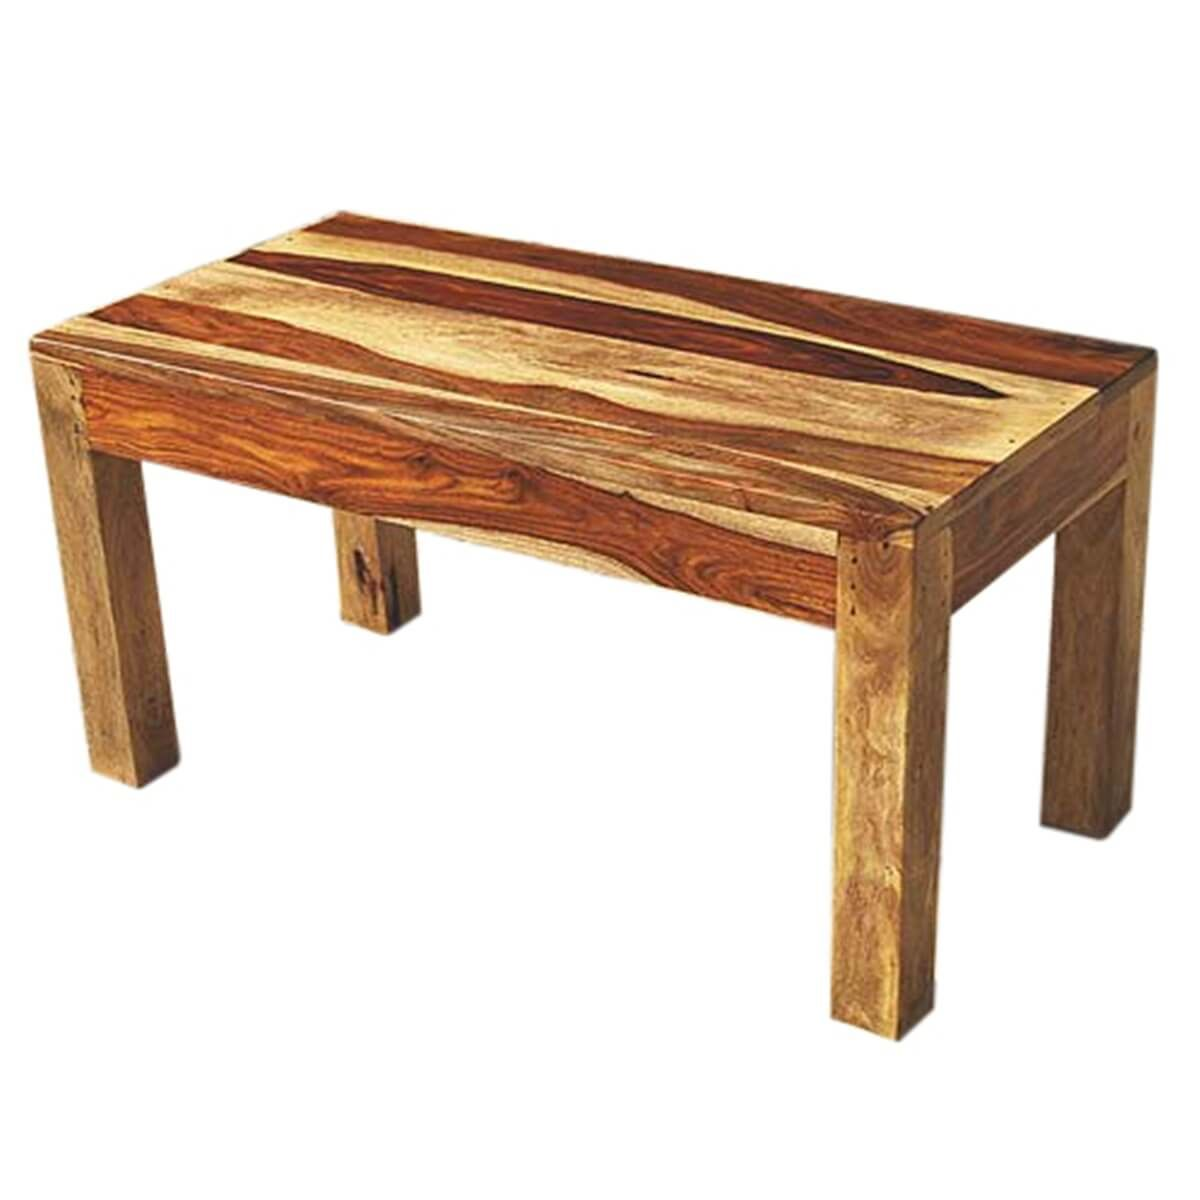 Mission Style Solid Wood Rectangular Coffee Table Coffee Table Unfinished Coffee Table Rectangular Coffee Table [ 1200 x 1200 Pixel ]